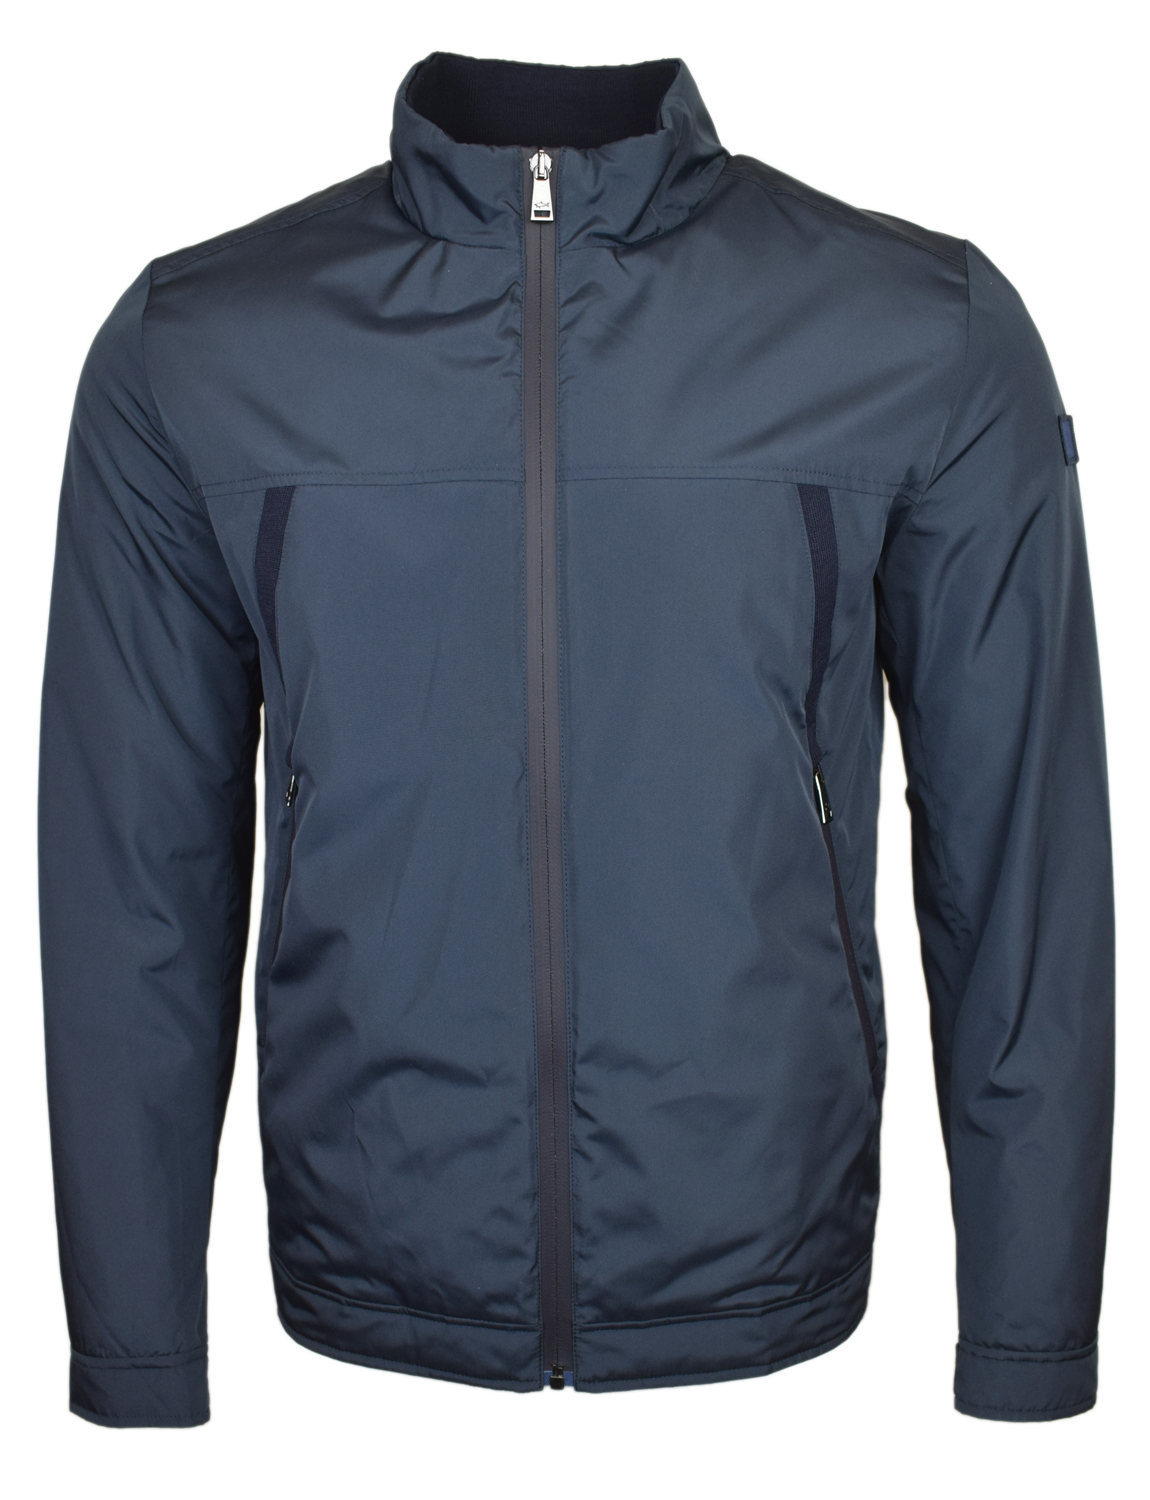 cfa770534d Dettagli su Paul & Shark Blu Navy Giacca Harrington BNWT